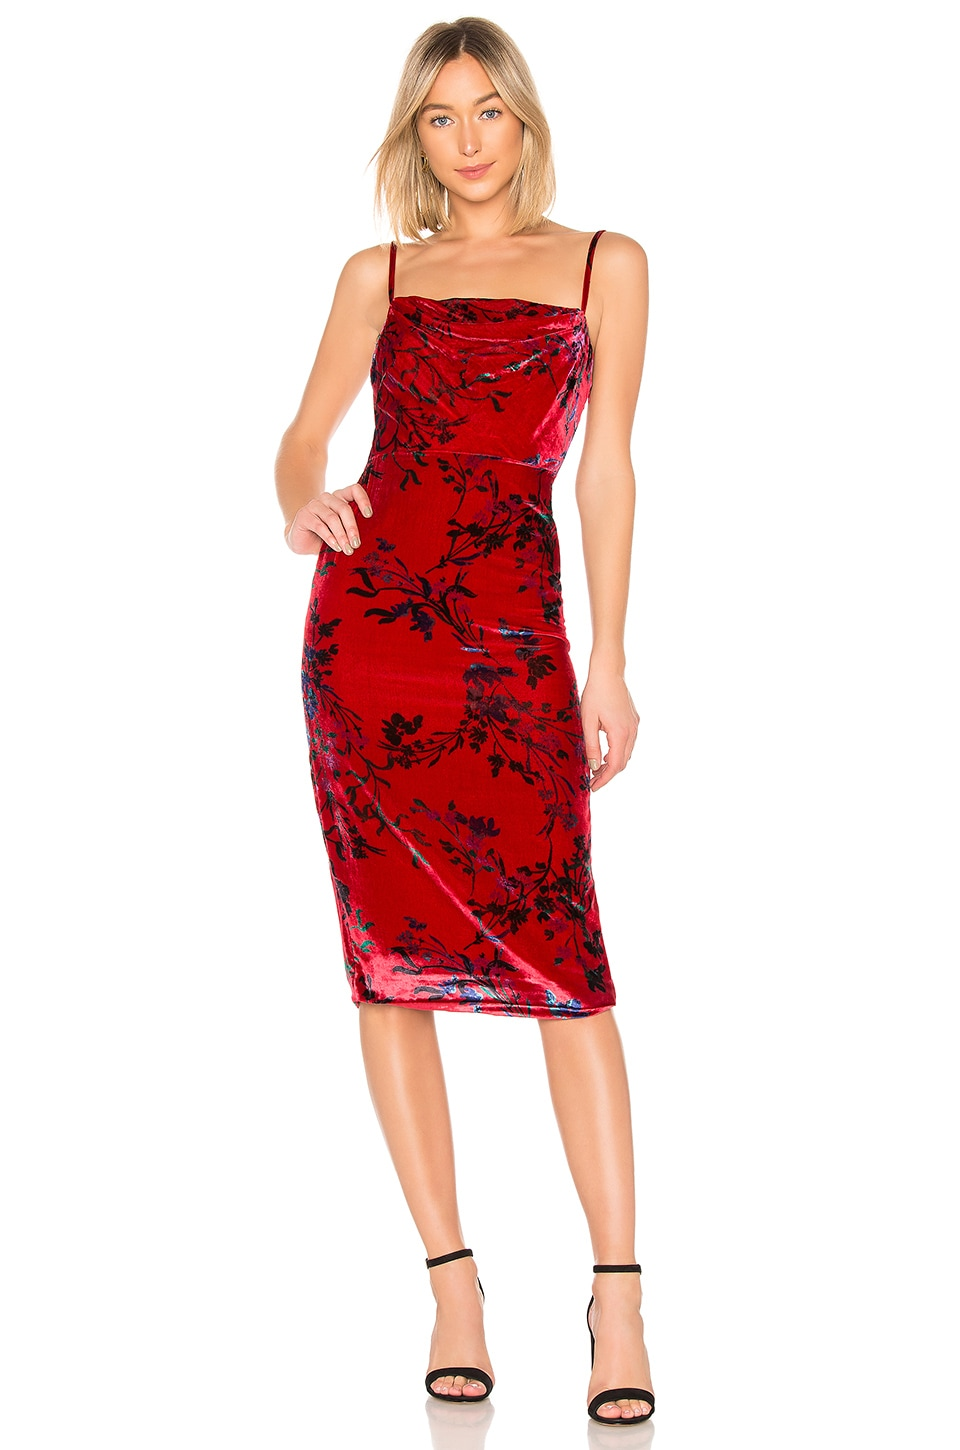 House of Harlow 1960 x REVOLVE Ira Midi Dress in Red Fleur